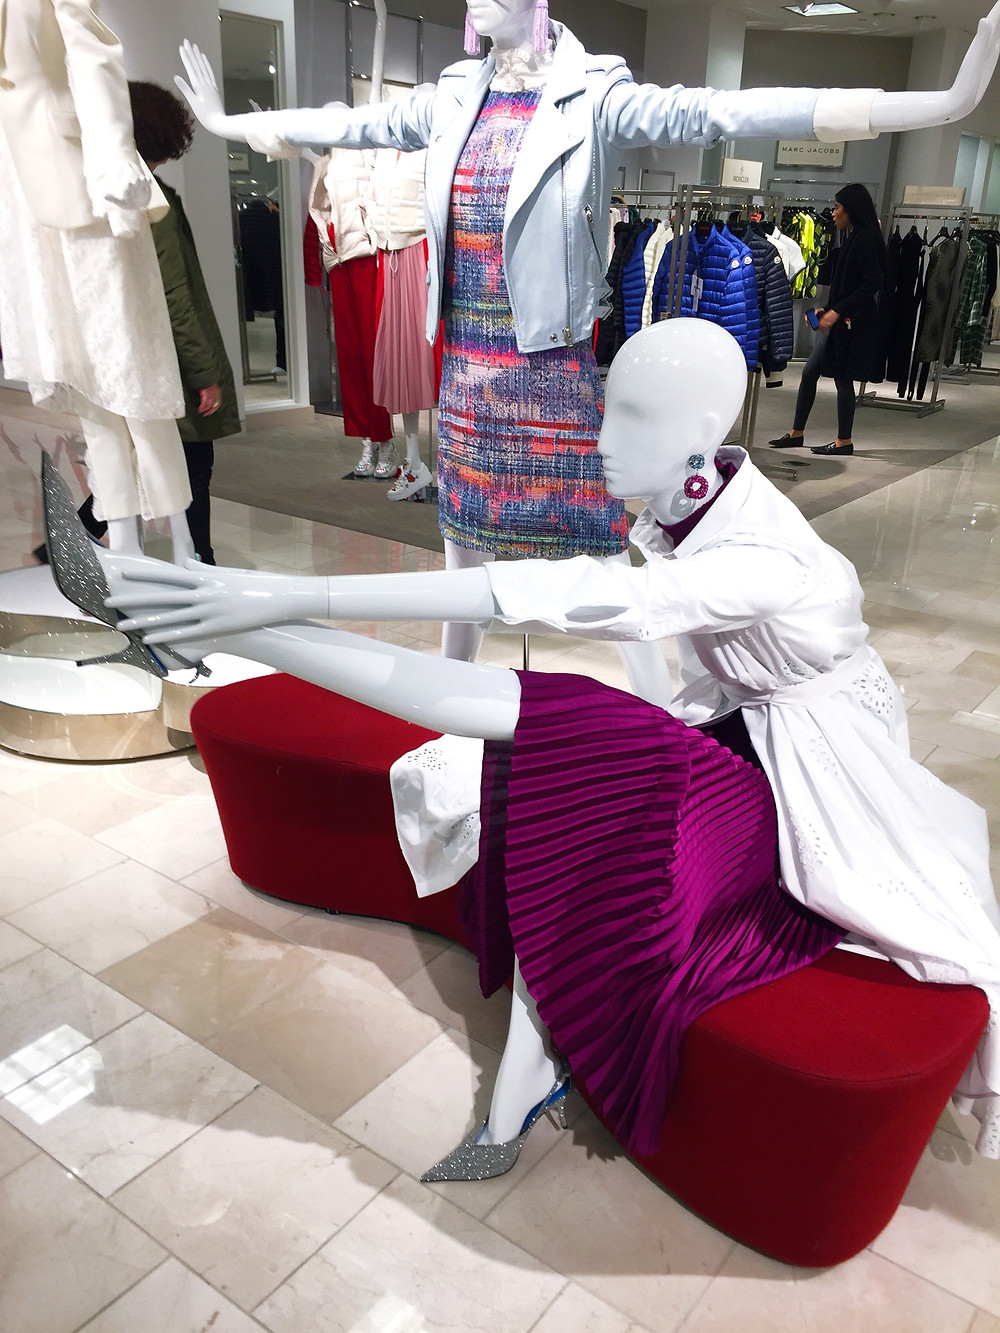 A white mannequin in a department store wearing a purple pleated skirt, white long coat and silver kitten heel slingback shoes. The mannequin is seated on a red curved bench, with one leg sticking out, reaching for that foot. Behind it stands another mannequin, wearing a rainbow colored mini dress and a silver moto jacket, with its arms and hands held straight out to the sides.